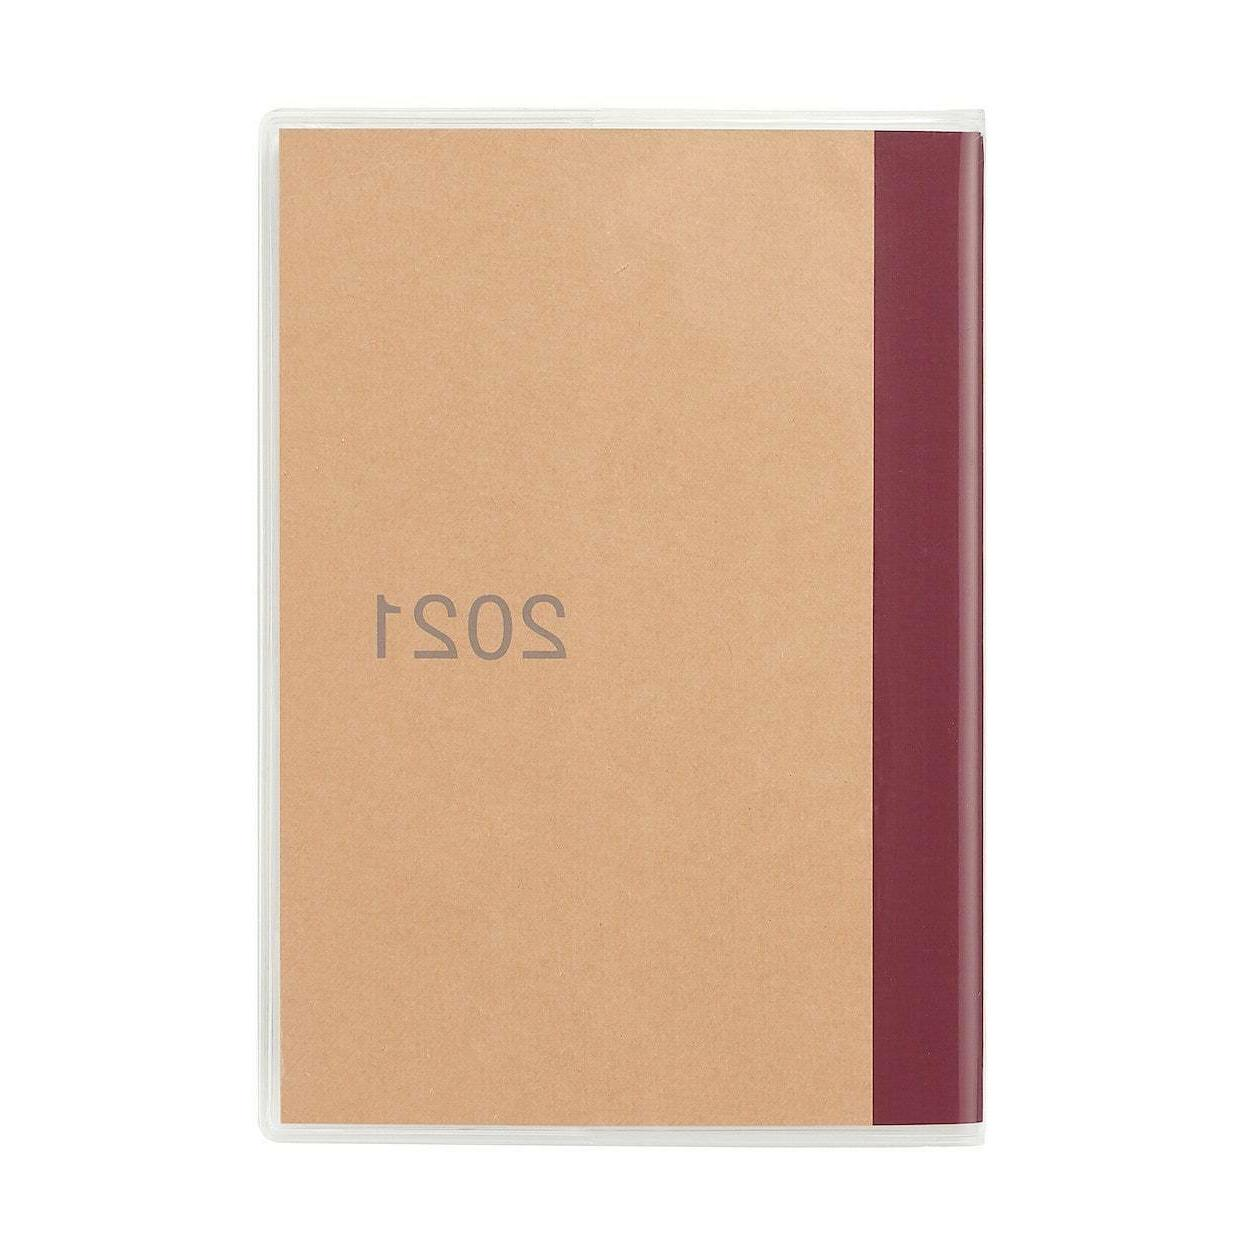 MUJI japan 2021 A6 size monthly schedule planner note book S